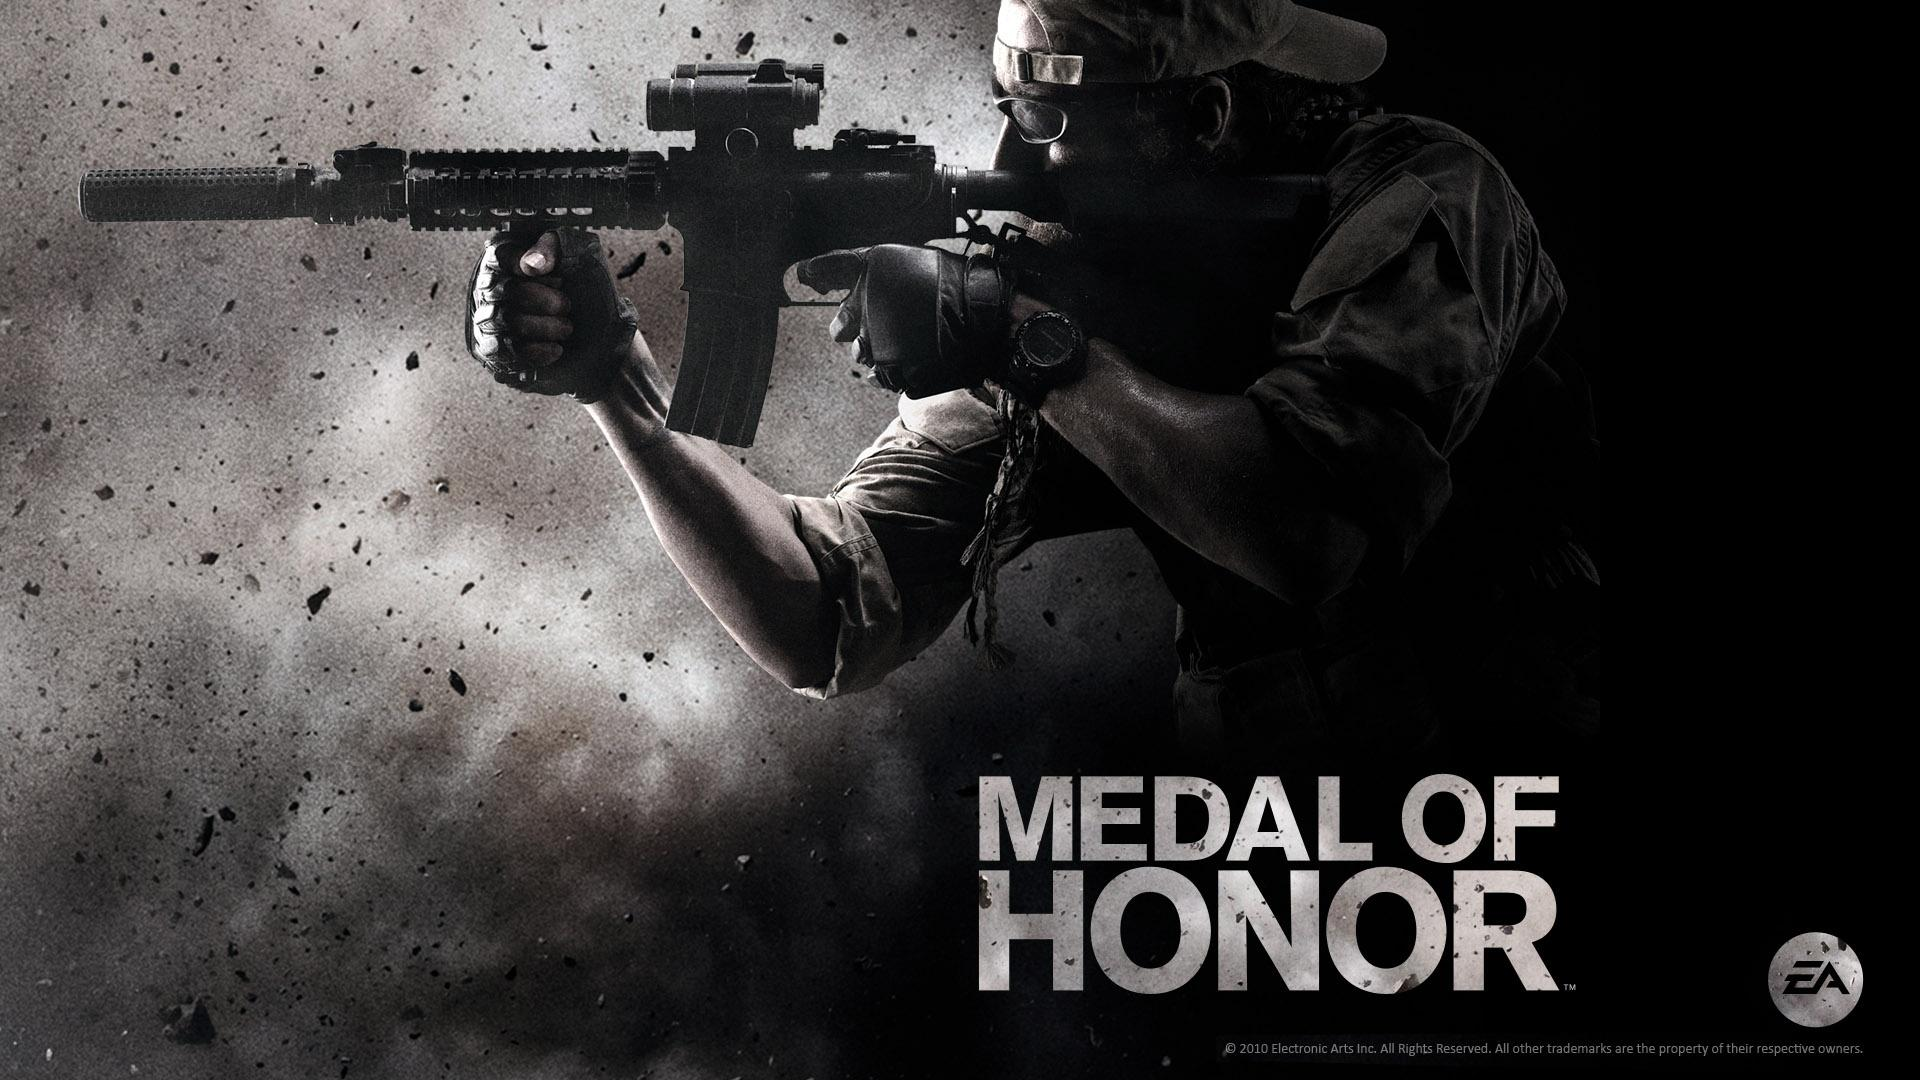 Обои Medal of honor 1920x1080